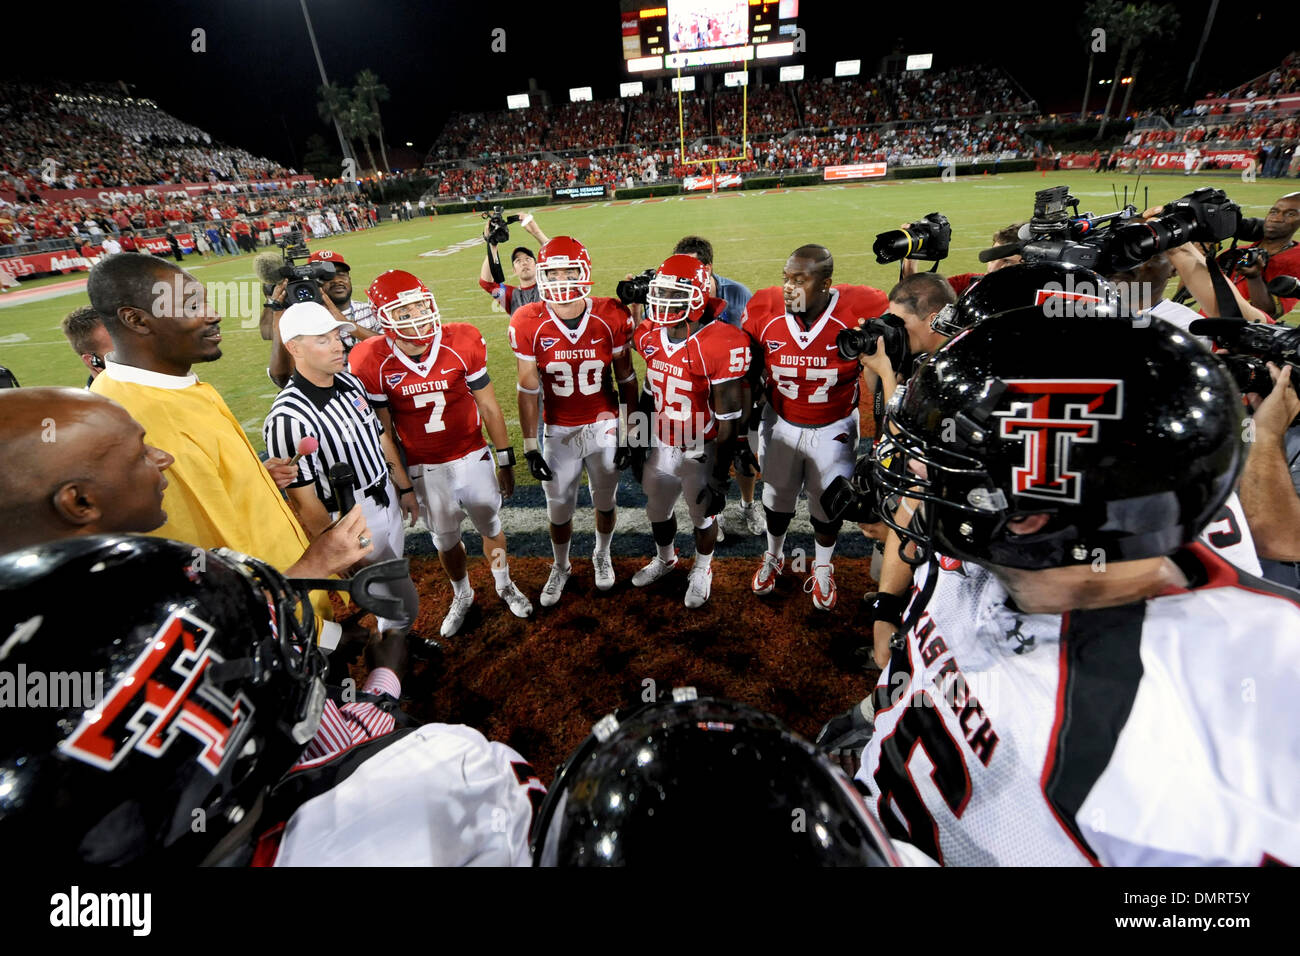 A battle between former SWC foes the Texas Tech Red Raiders travel to Houston to face the #17 ranked Houston Cougars for a shoot out!  Pregame coin flip between the visiting Red Raiders and Cougars. (Credit Image: © Steven Leija/Southcreek Global/ZUMApress.com) - Stock Image